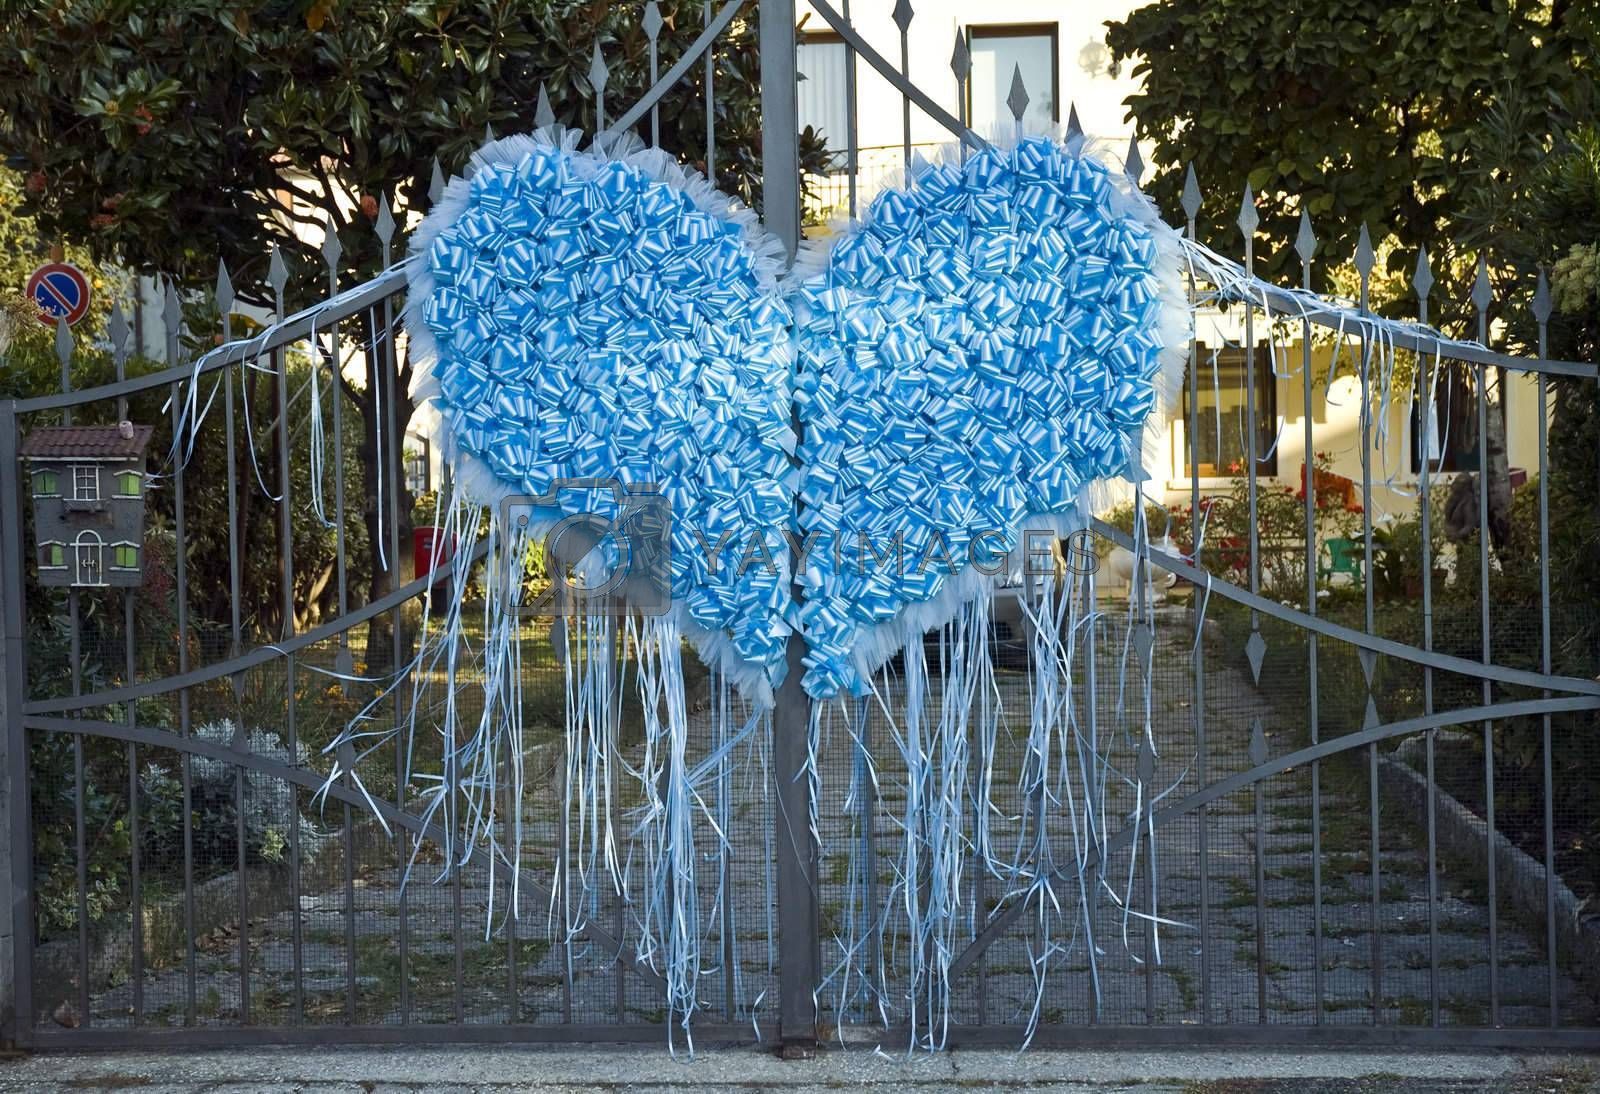 heart made of blue ribbons to celebrate a birth